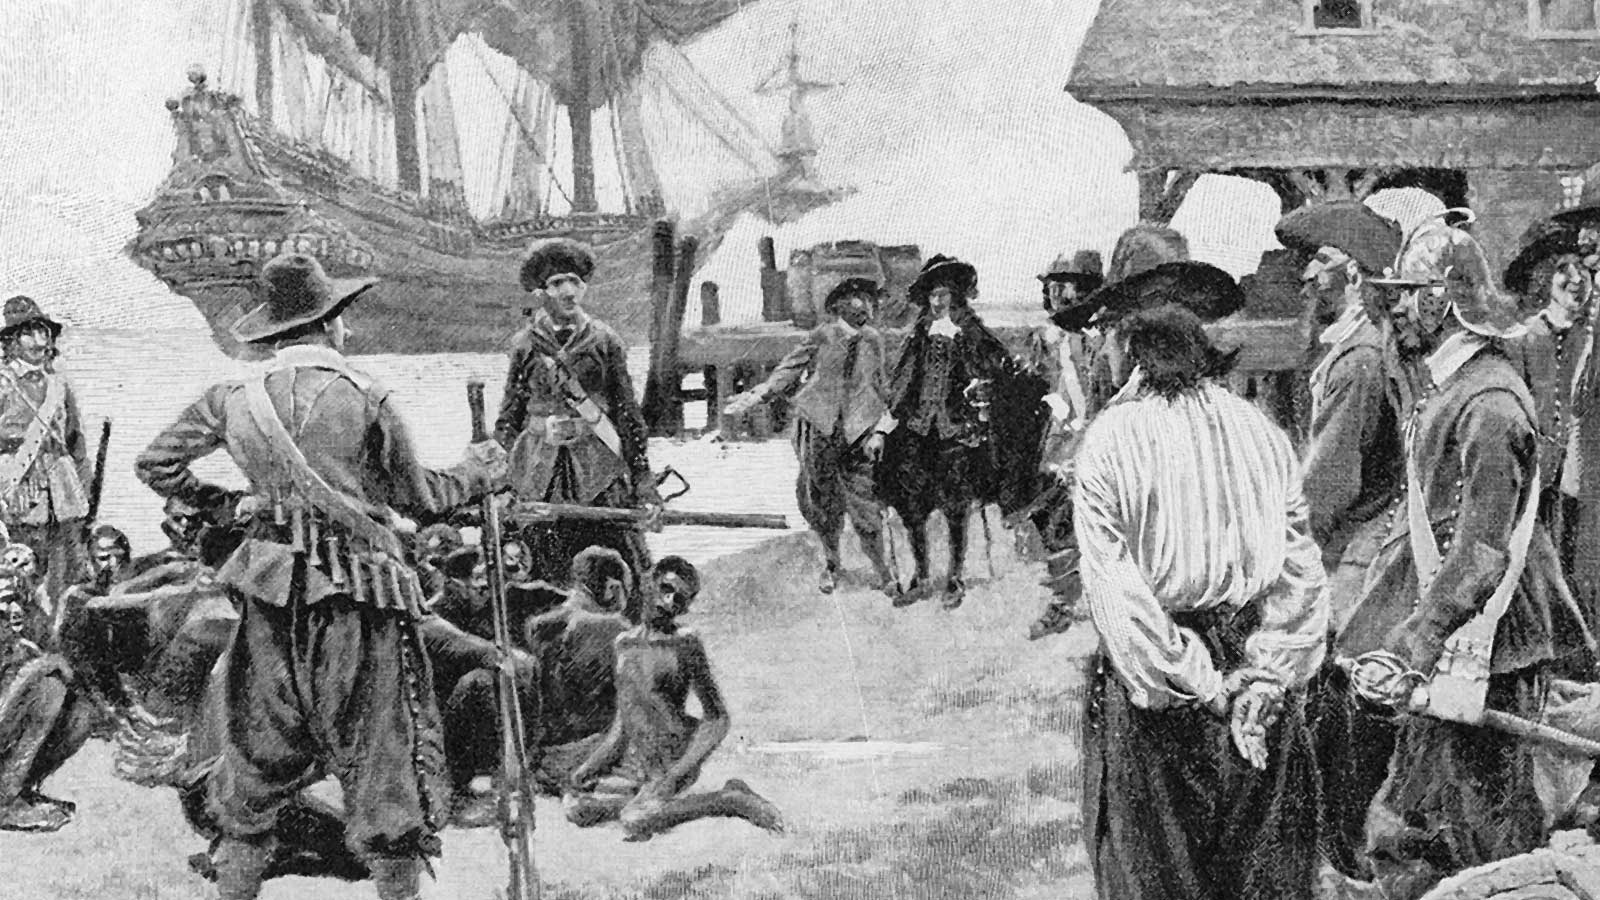 Illustration of the importation of captive Africans at Jamestown in 1619, Howard Pyle, 1910.